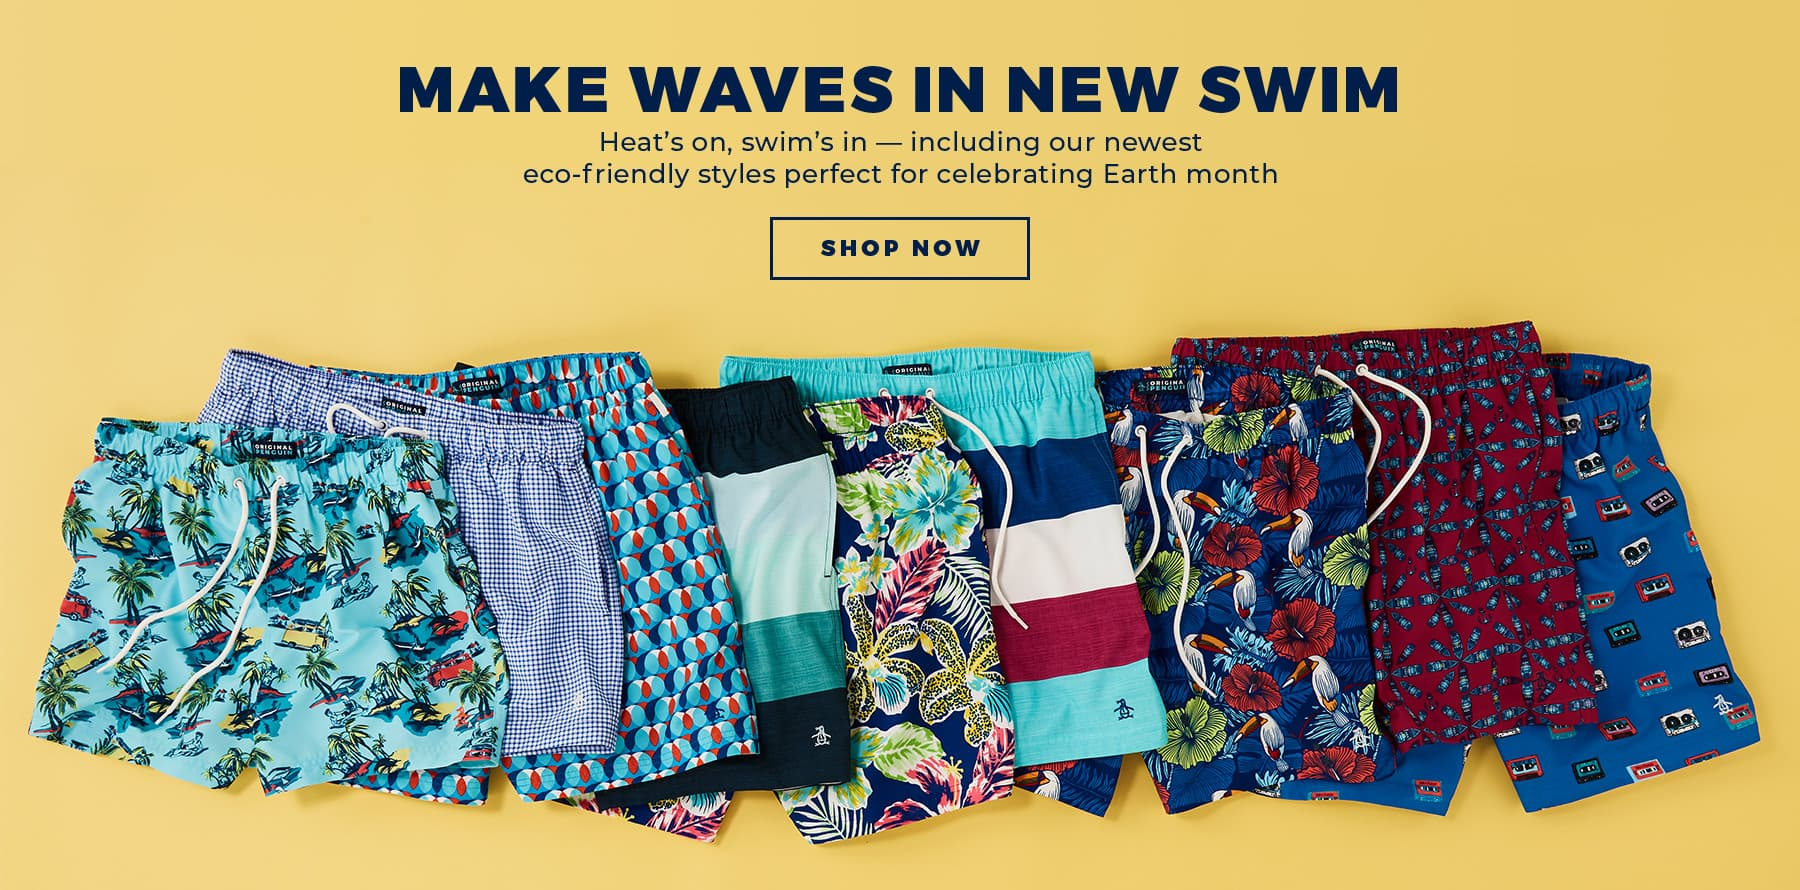 MAKE WAVES IN NEW SWIM - Shop Now